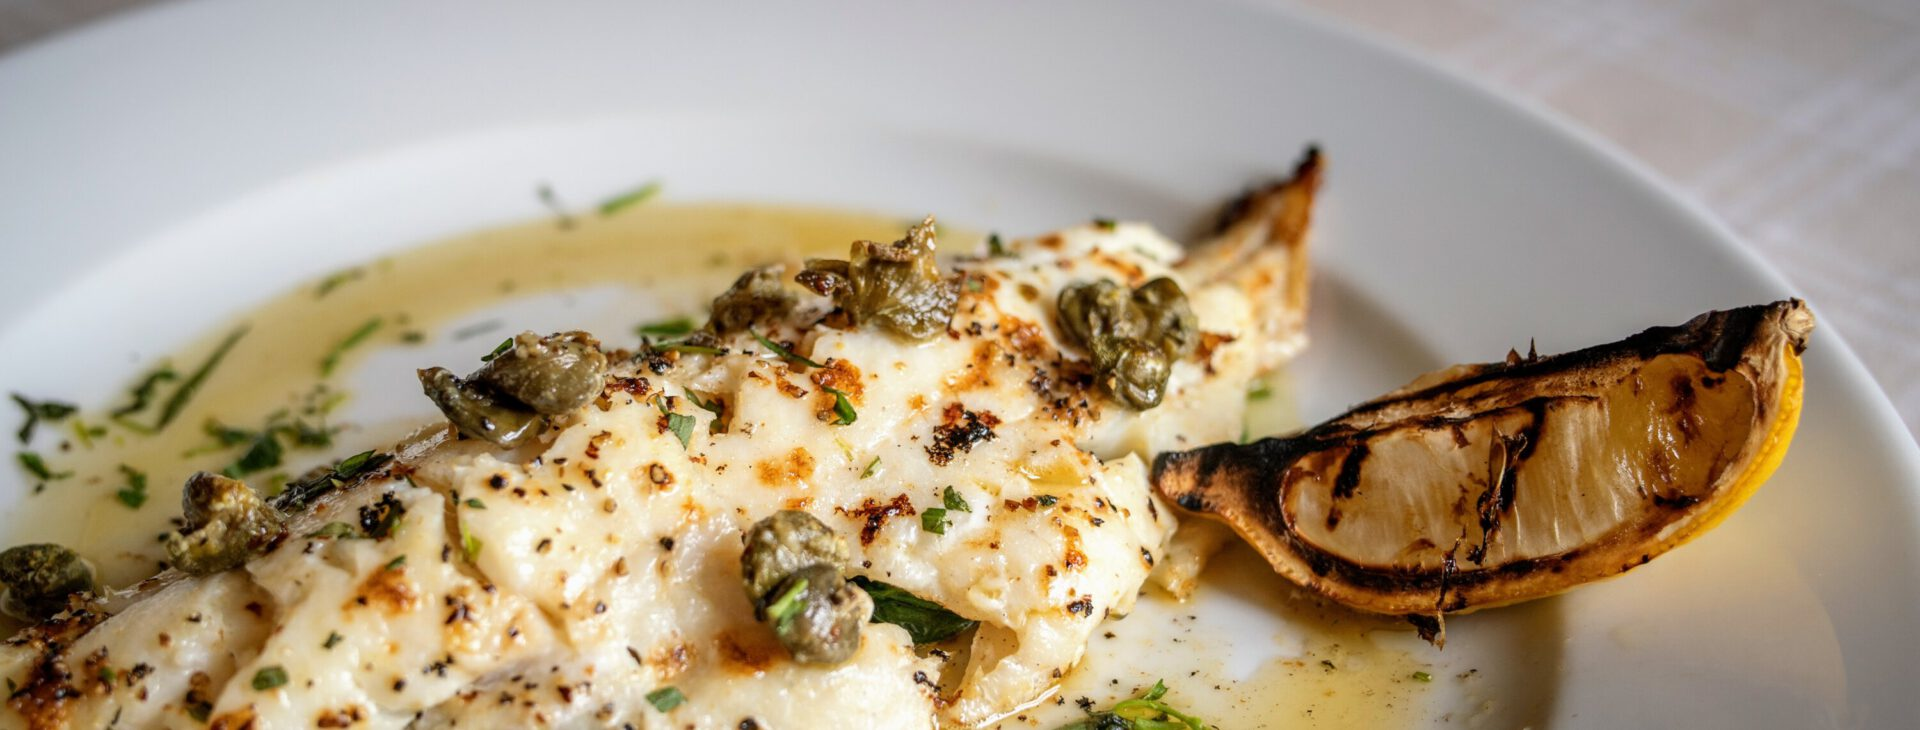 lightly browned piece of white fish on a plate with slice of lemon and drizzled in a buttery sauce